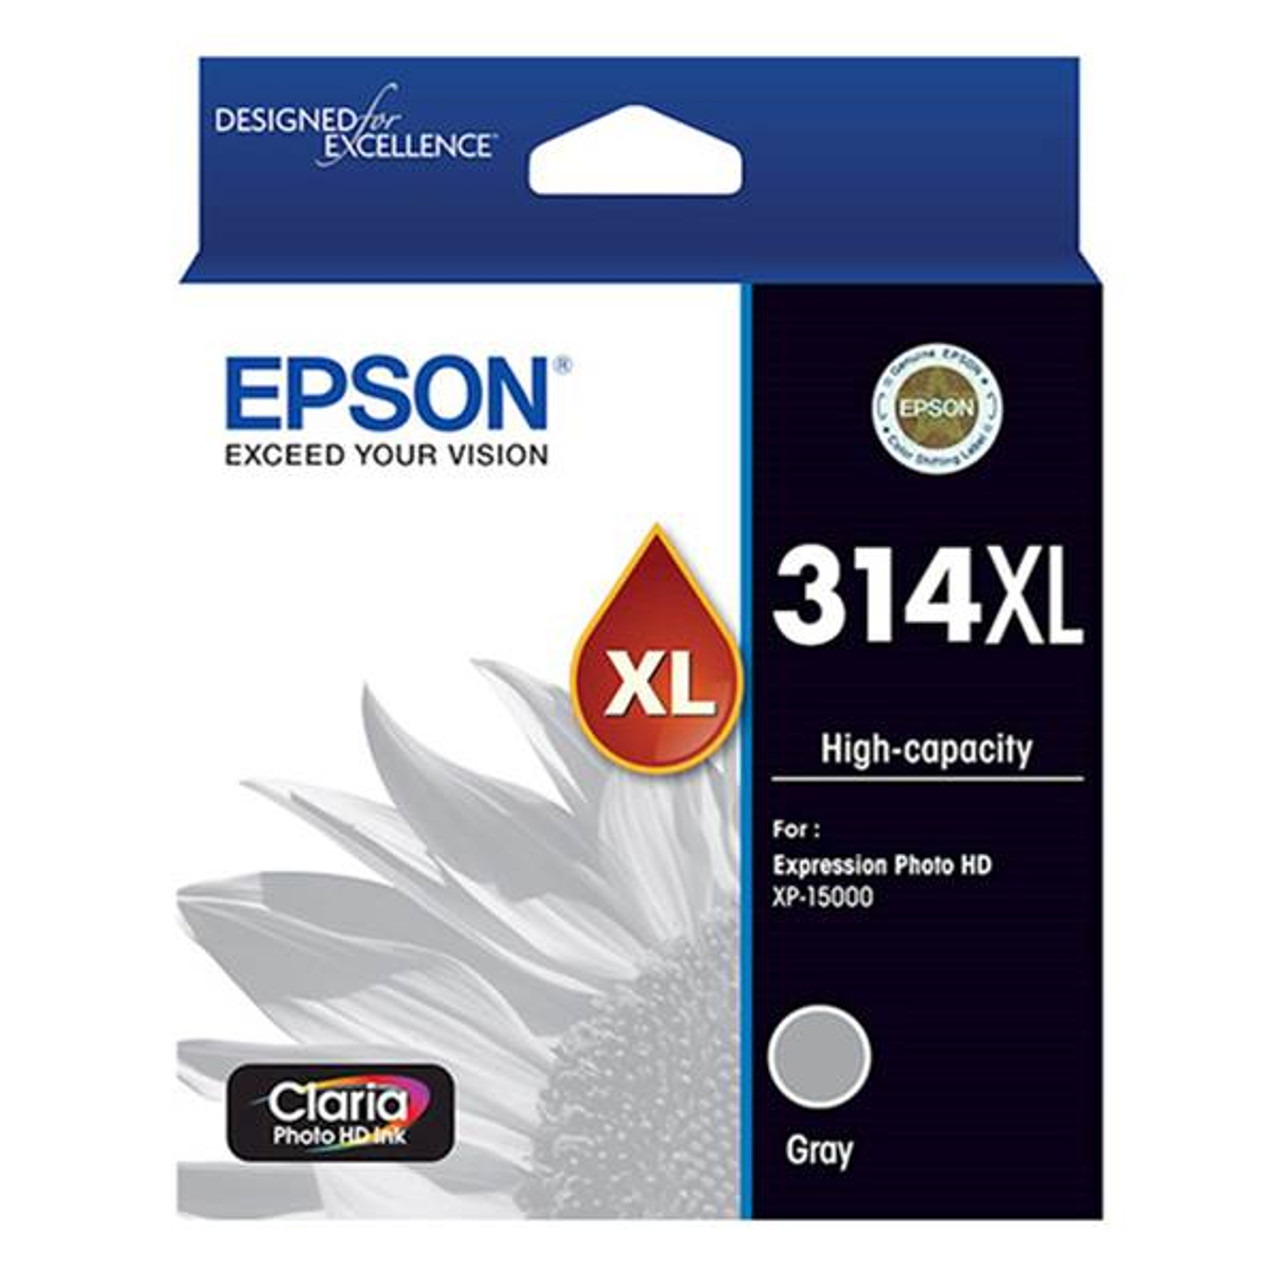 Image for Epson 314XL High Capacity Claria Photo HD Gray Ink Cartridge CX Computer Superstore